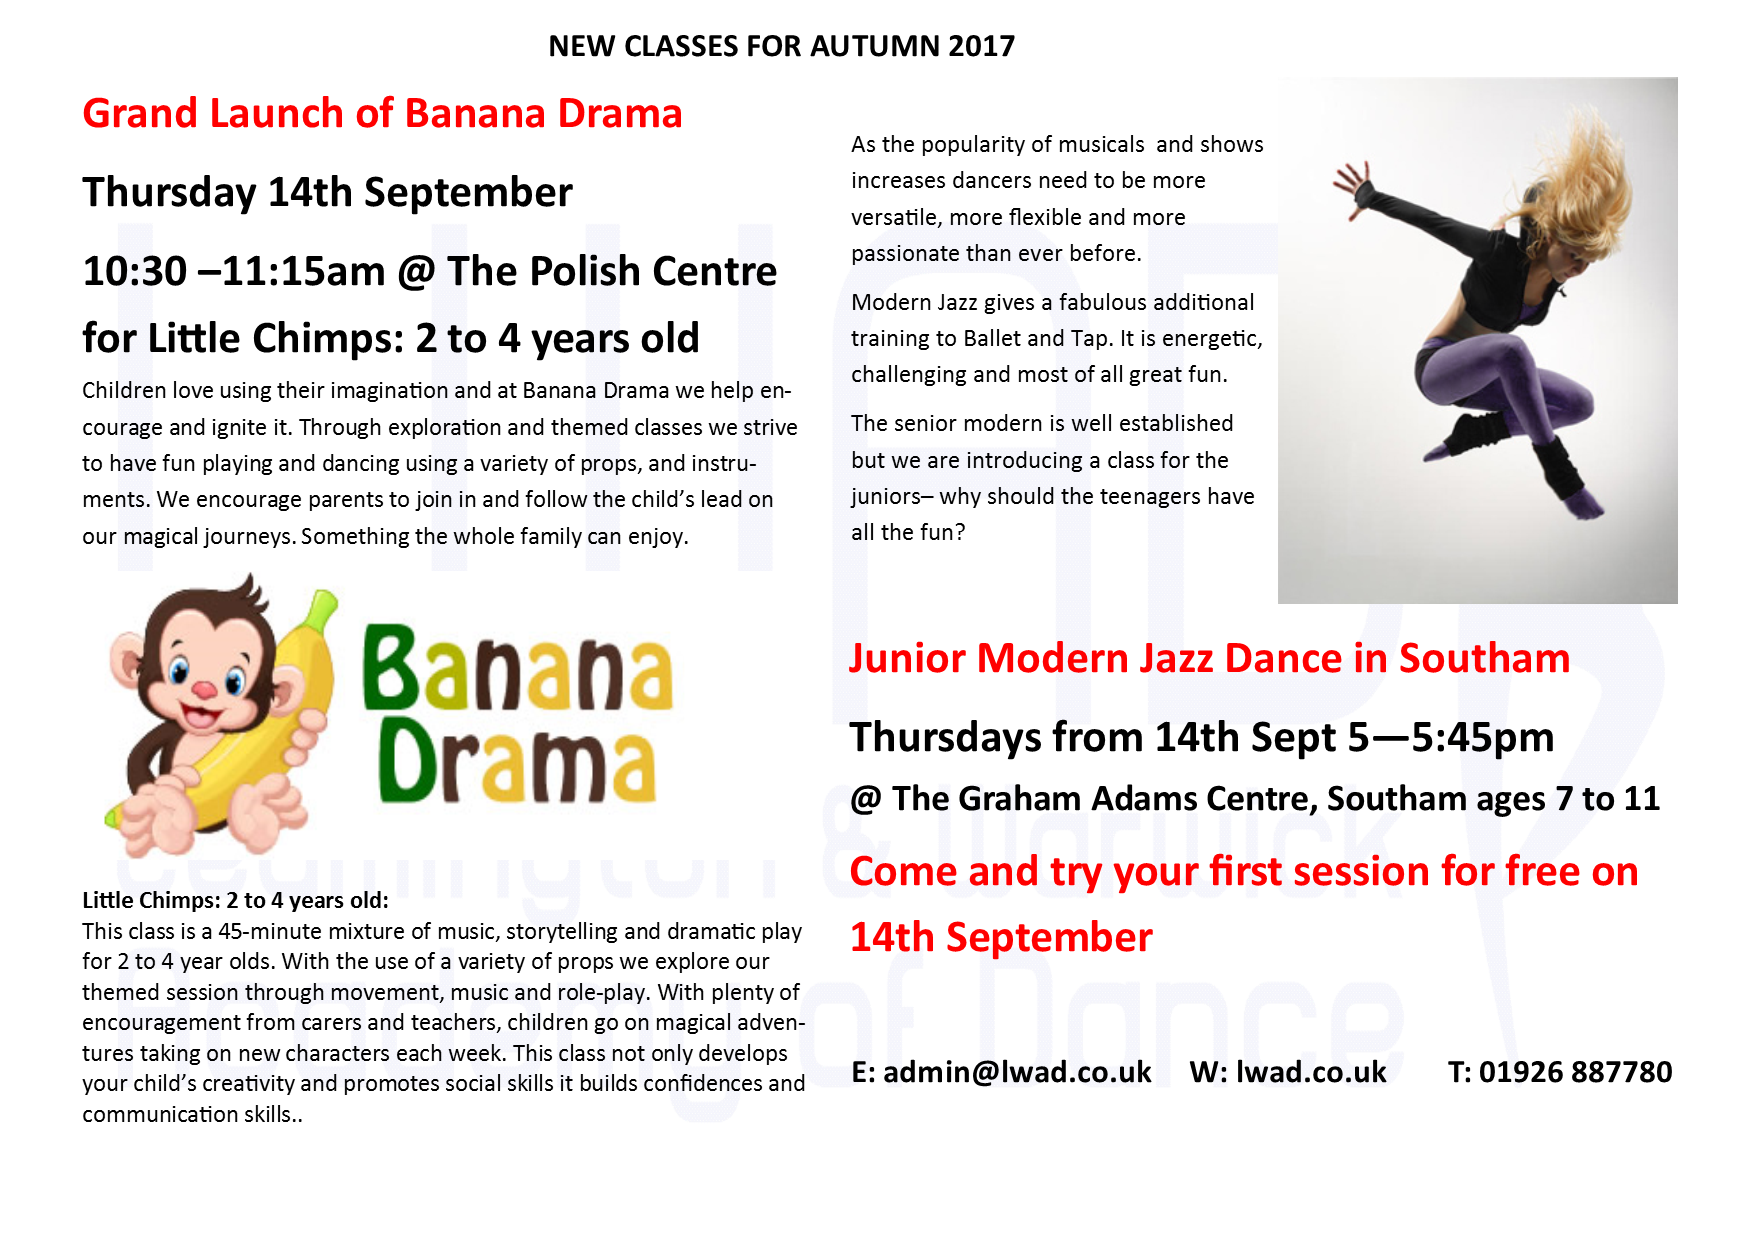 NEW CLASSES FOR AUTUMN 2017